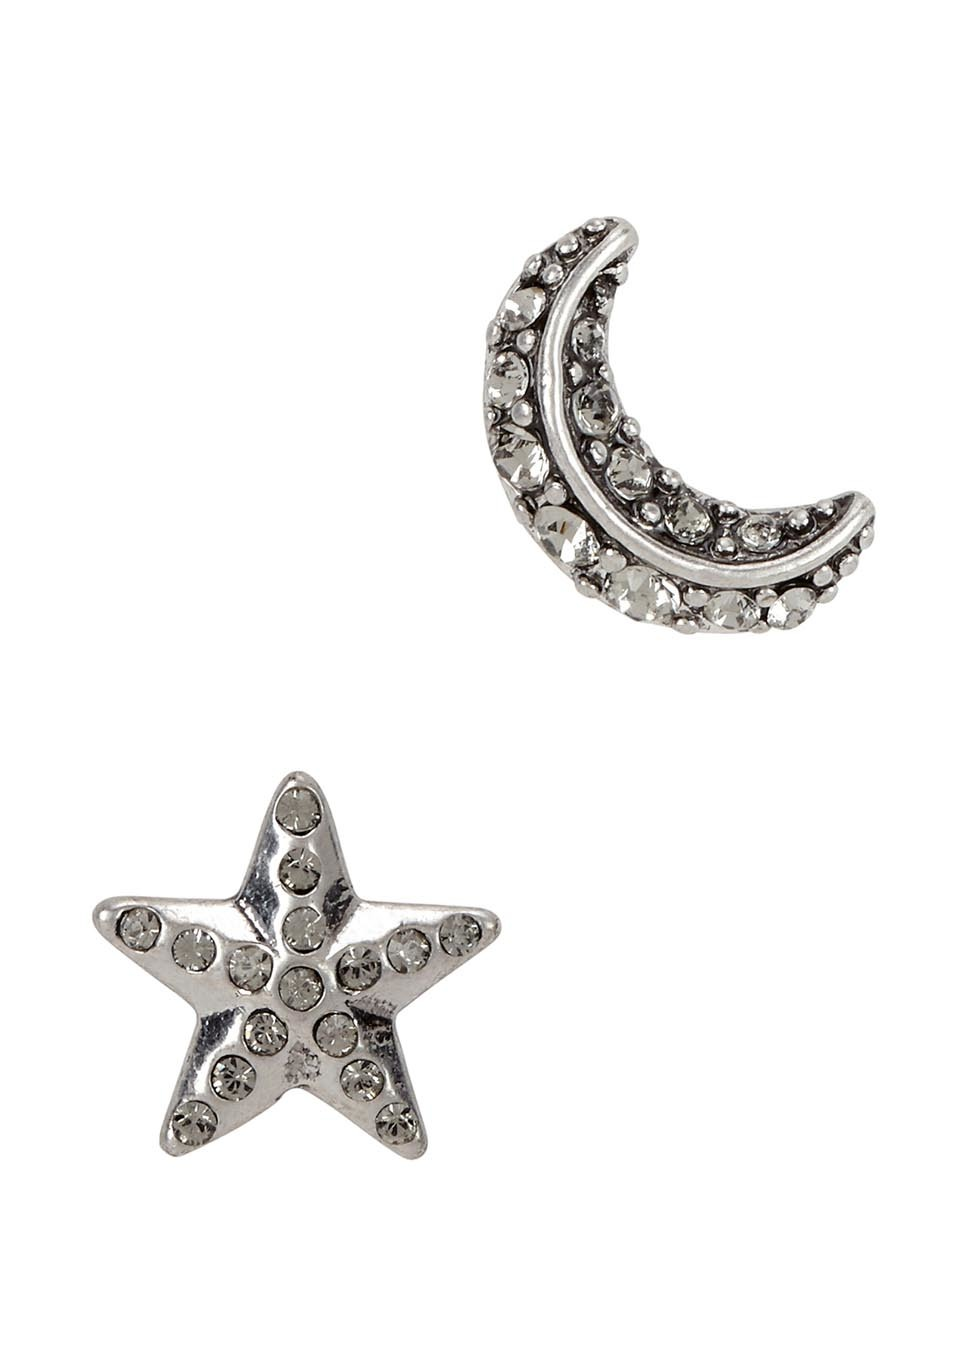 Star And Moon Silver Tone Earrings - predominant colour: silver; occasions: evening; style: stud; length: short; size: small/fine; material: chain/metal; fastening: pierced; finish: metallic; embellishment: crystals/glass; season: a/w 2016